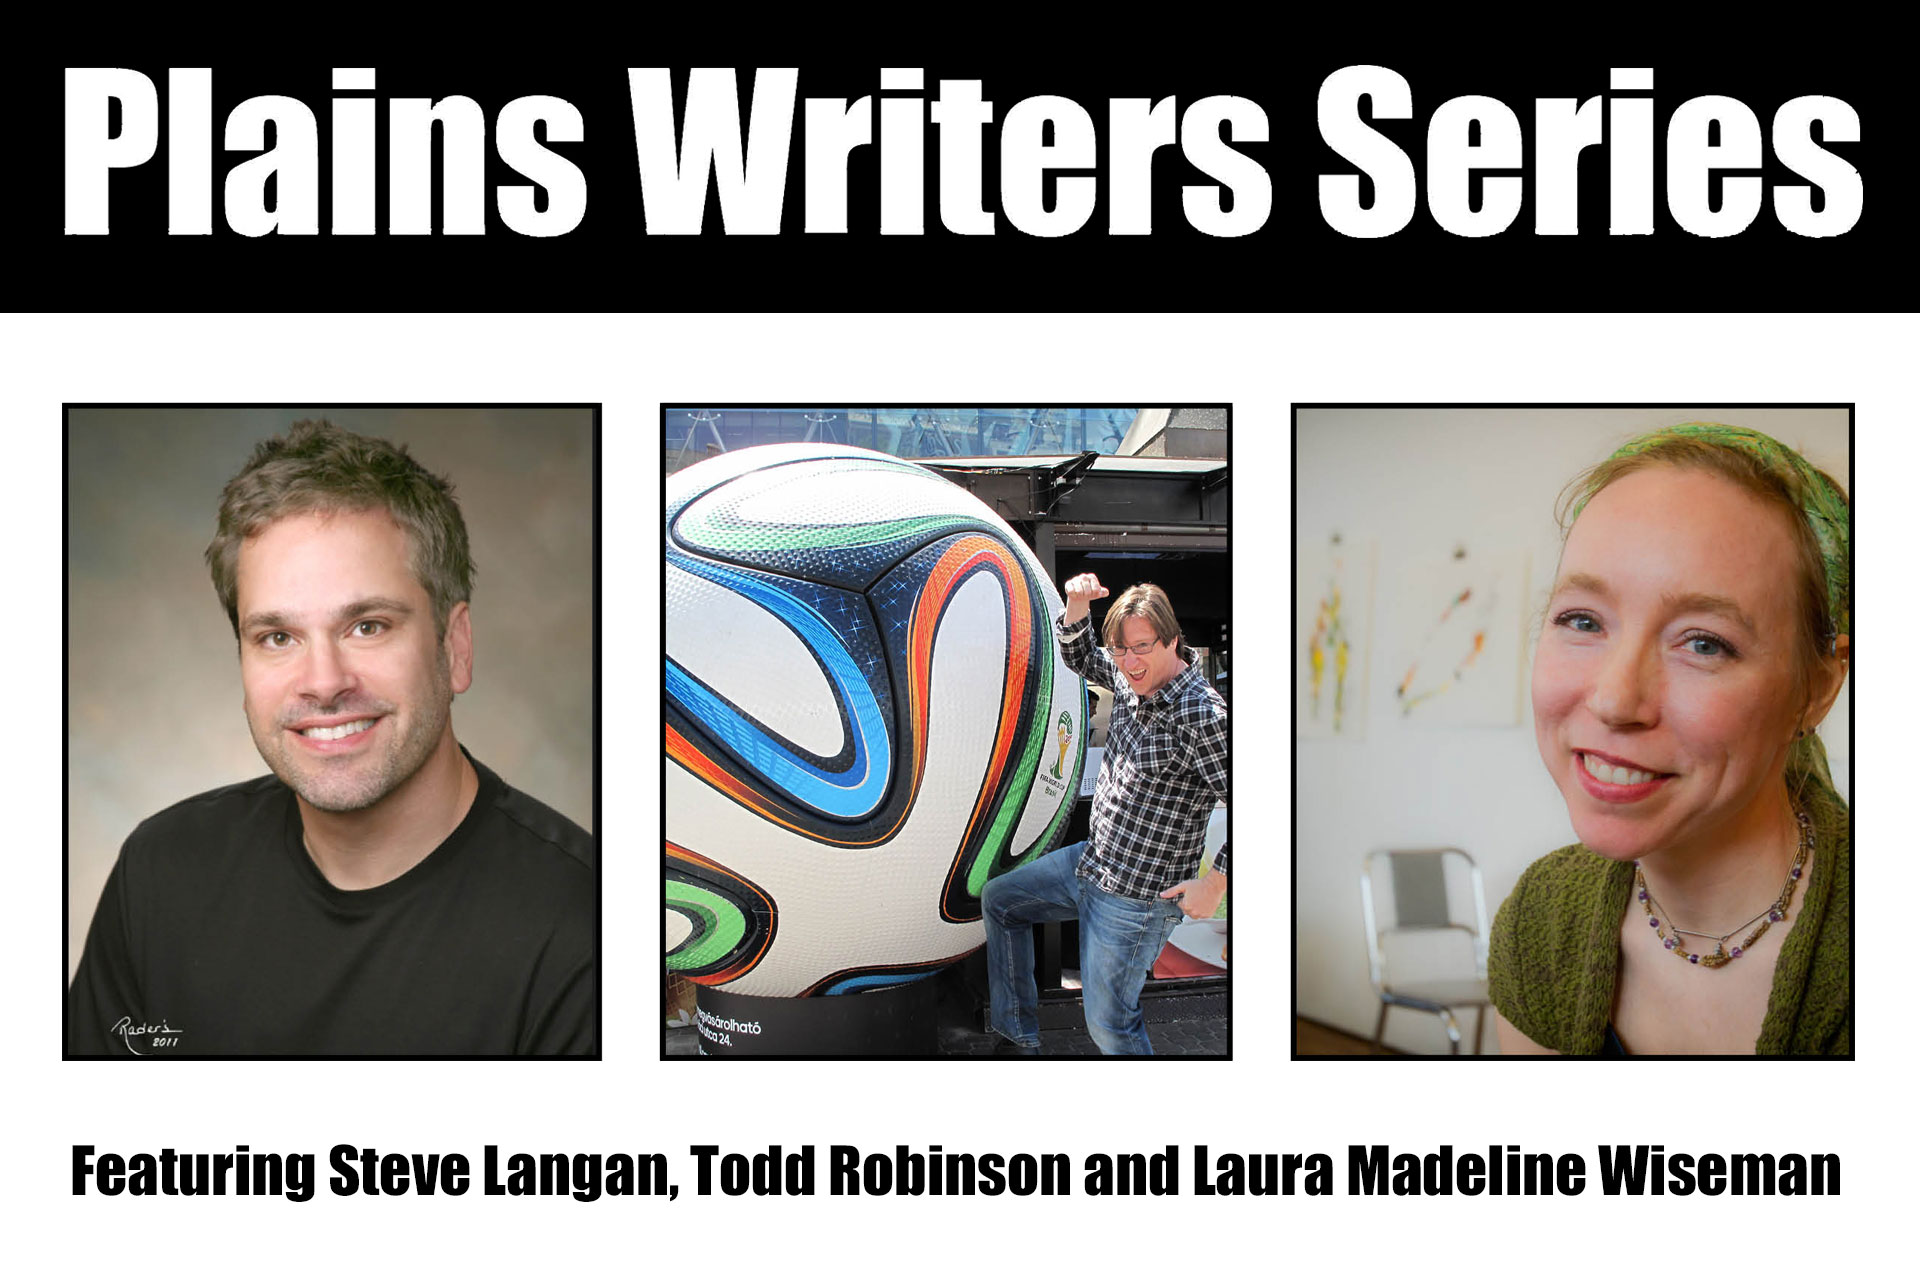 Plains Writers Series